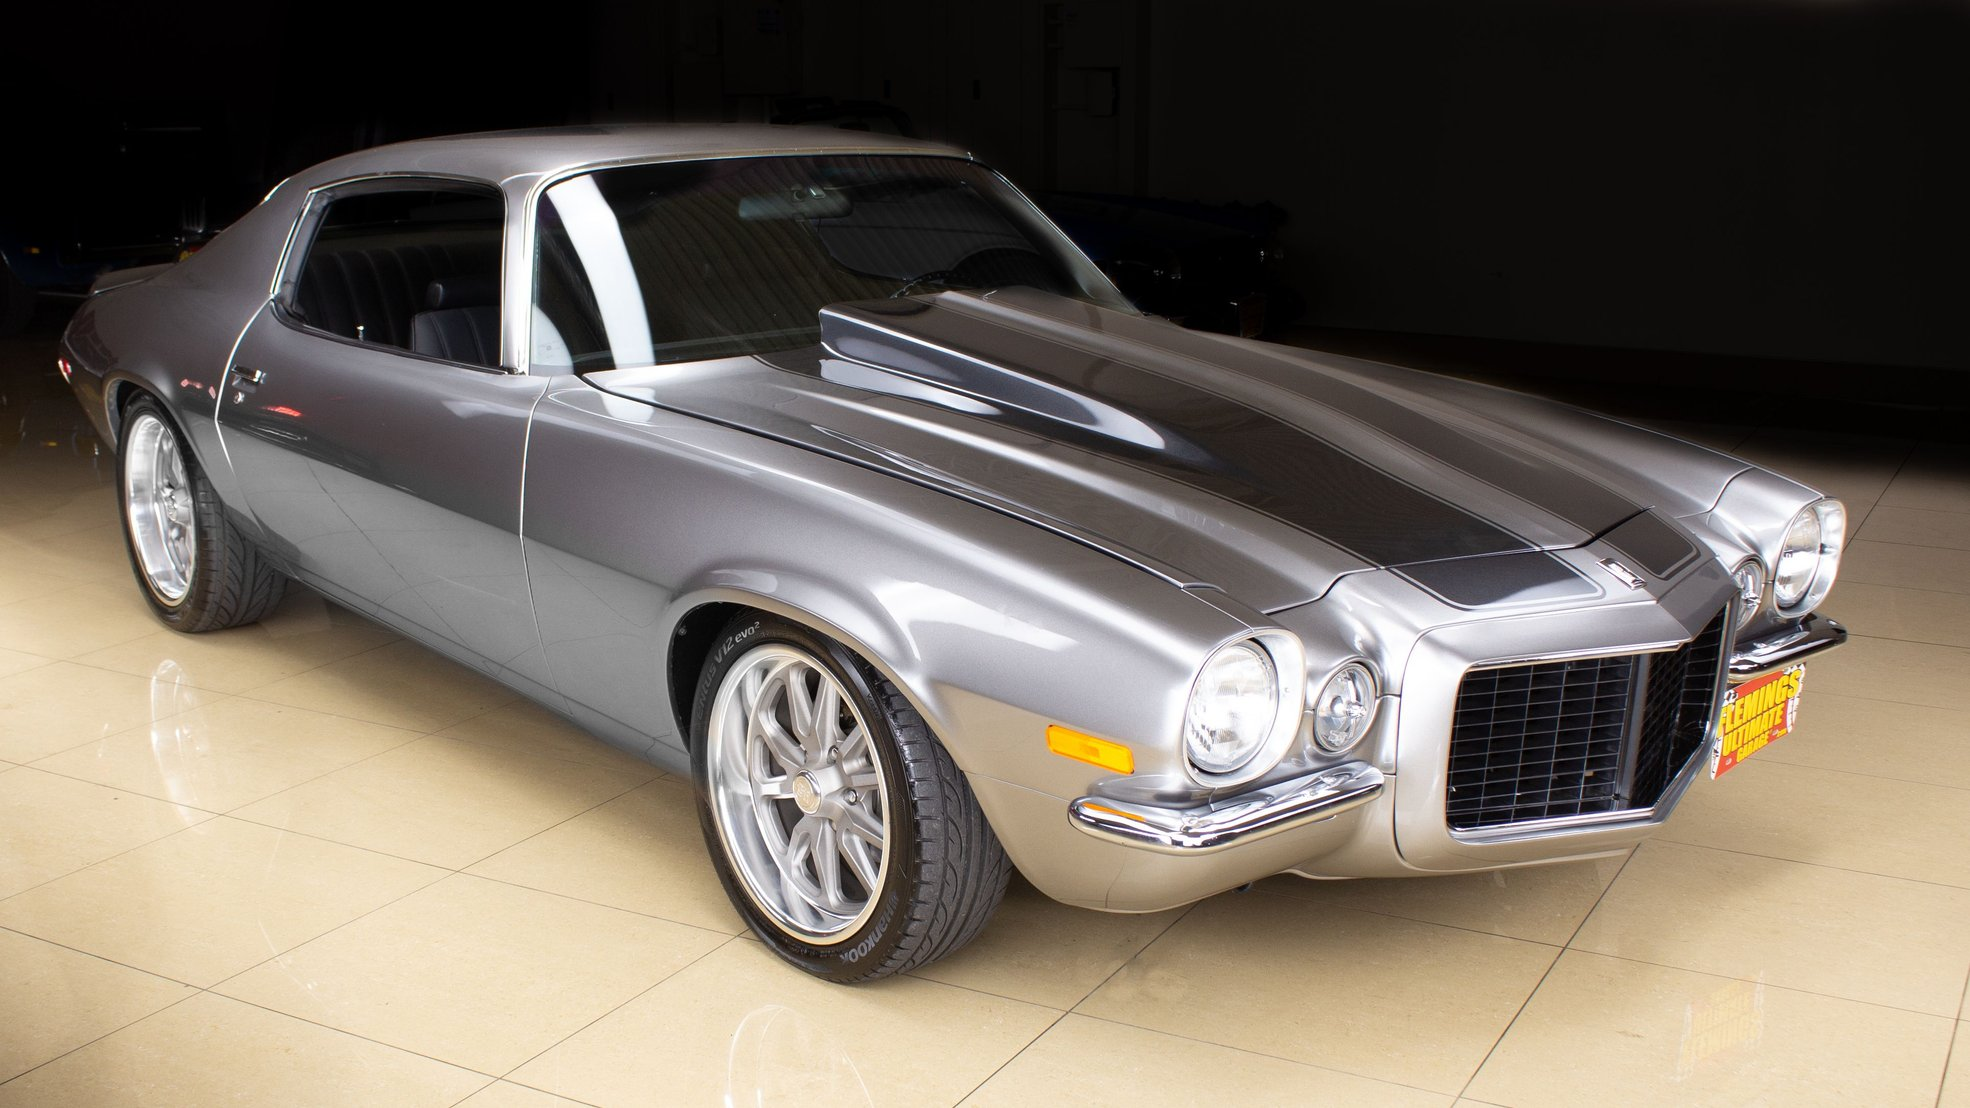 This 1970 Chevy Camaro Rs Hides Ls1 Engine Under Slick Cowl Induction Hood Autoevolution